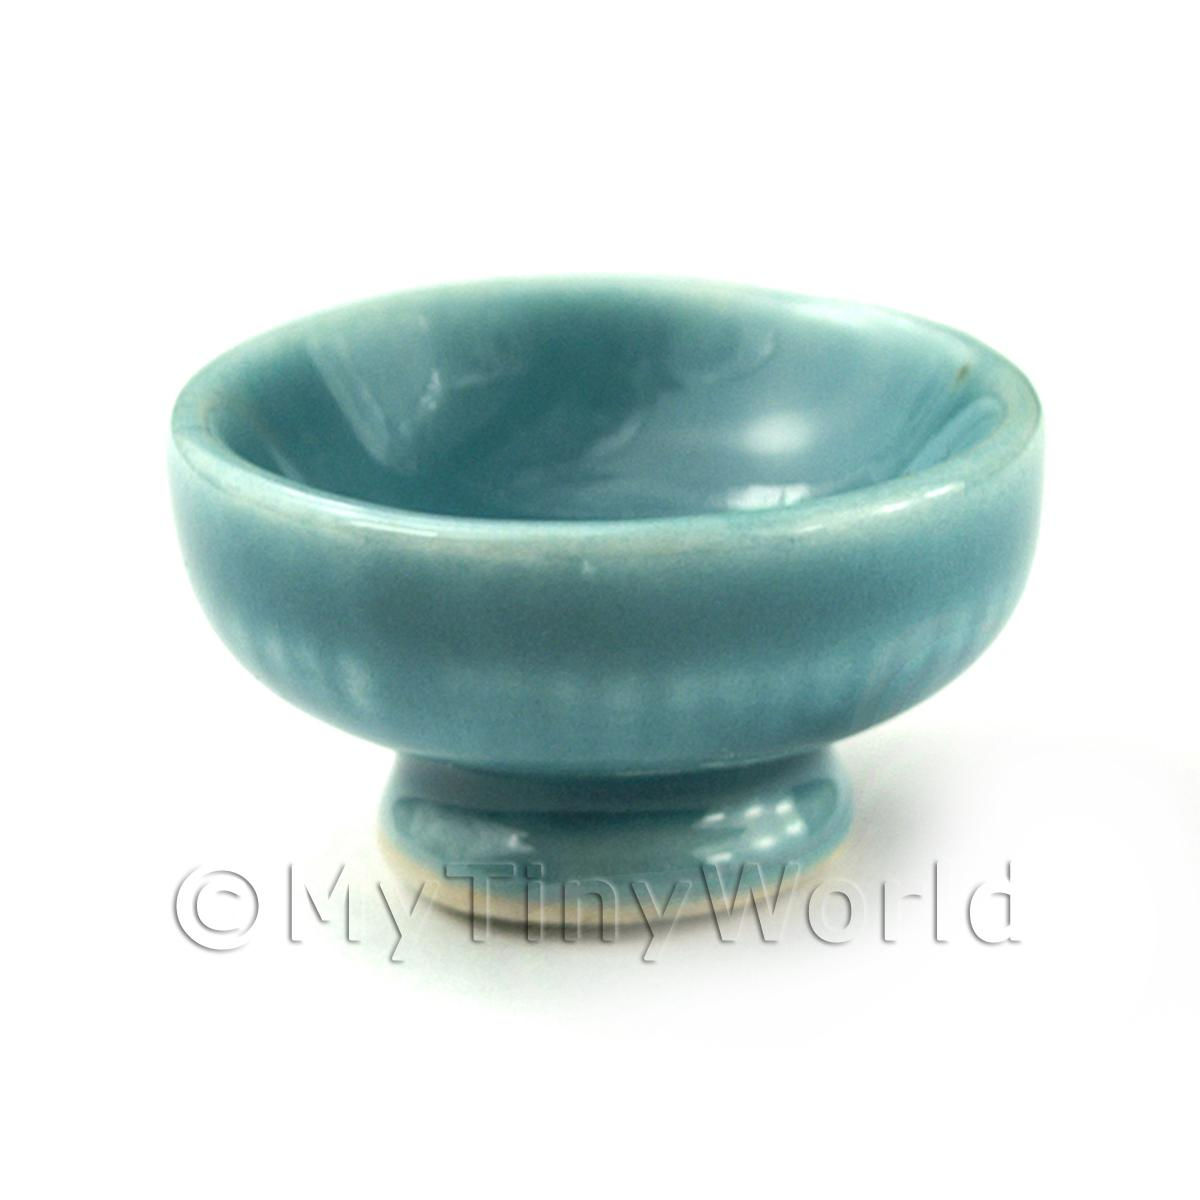 Dolls House Aquamarine 23mm Ceramic Fruit Bowl